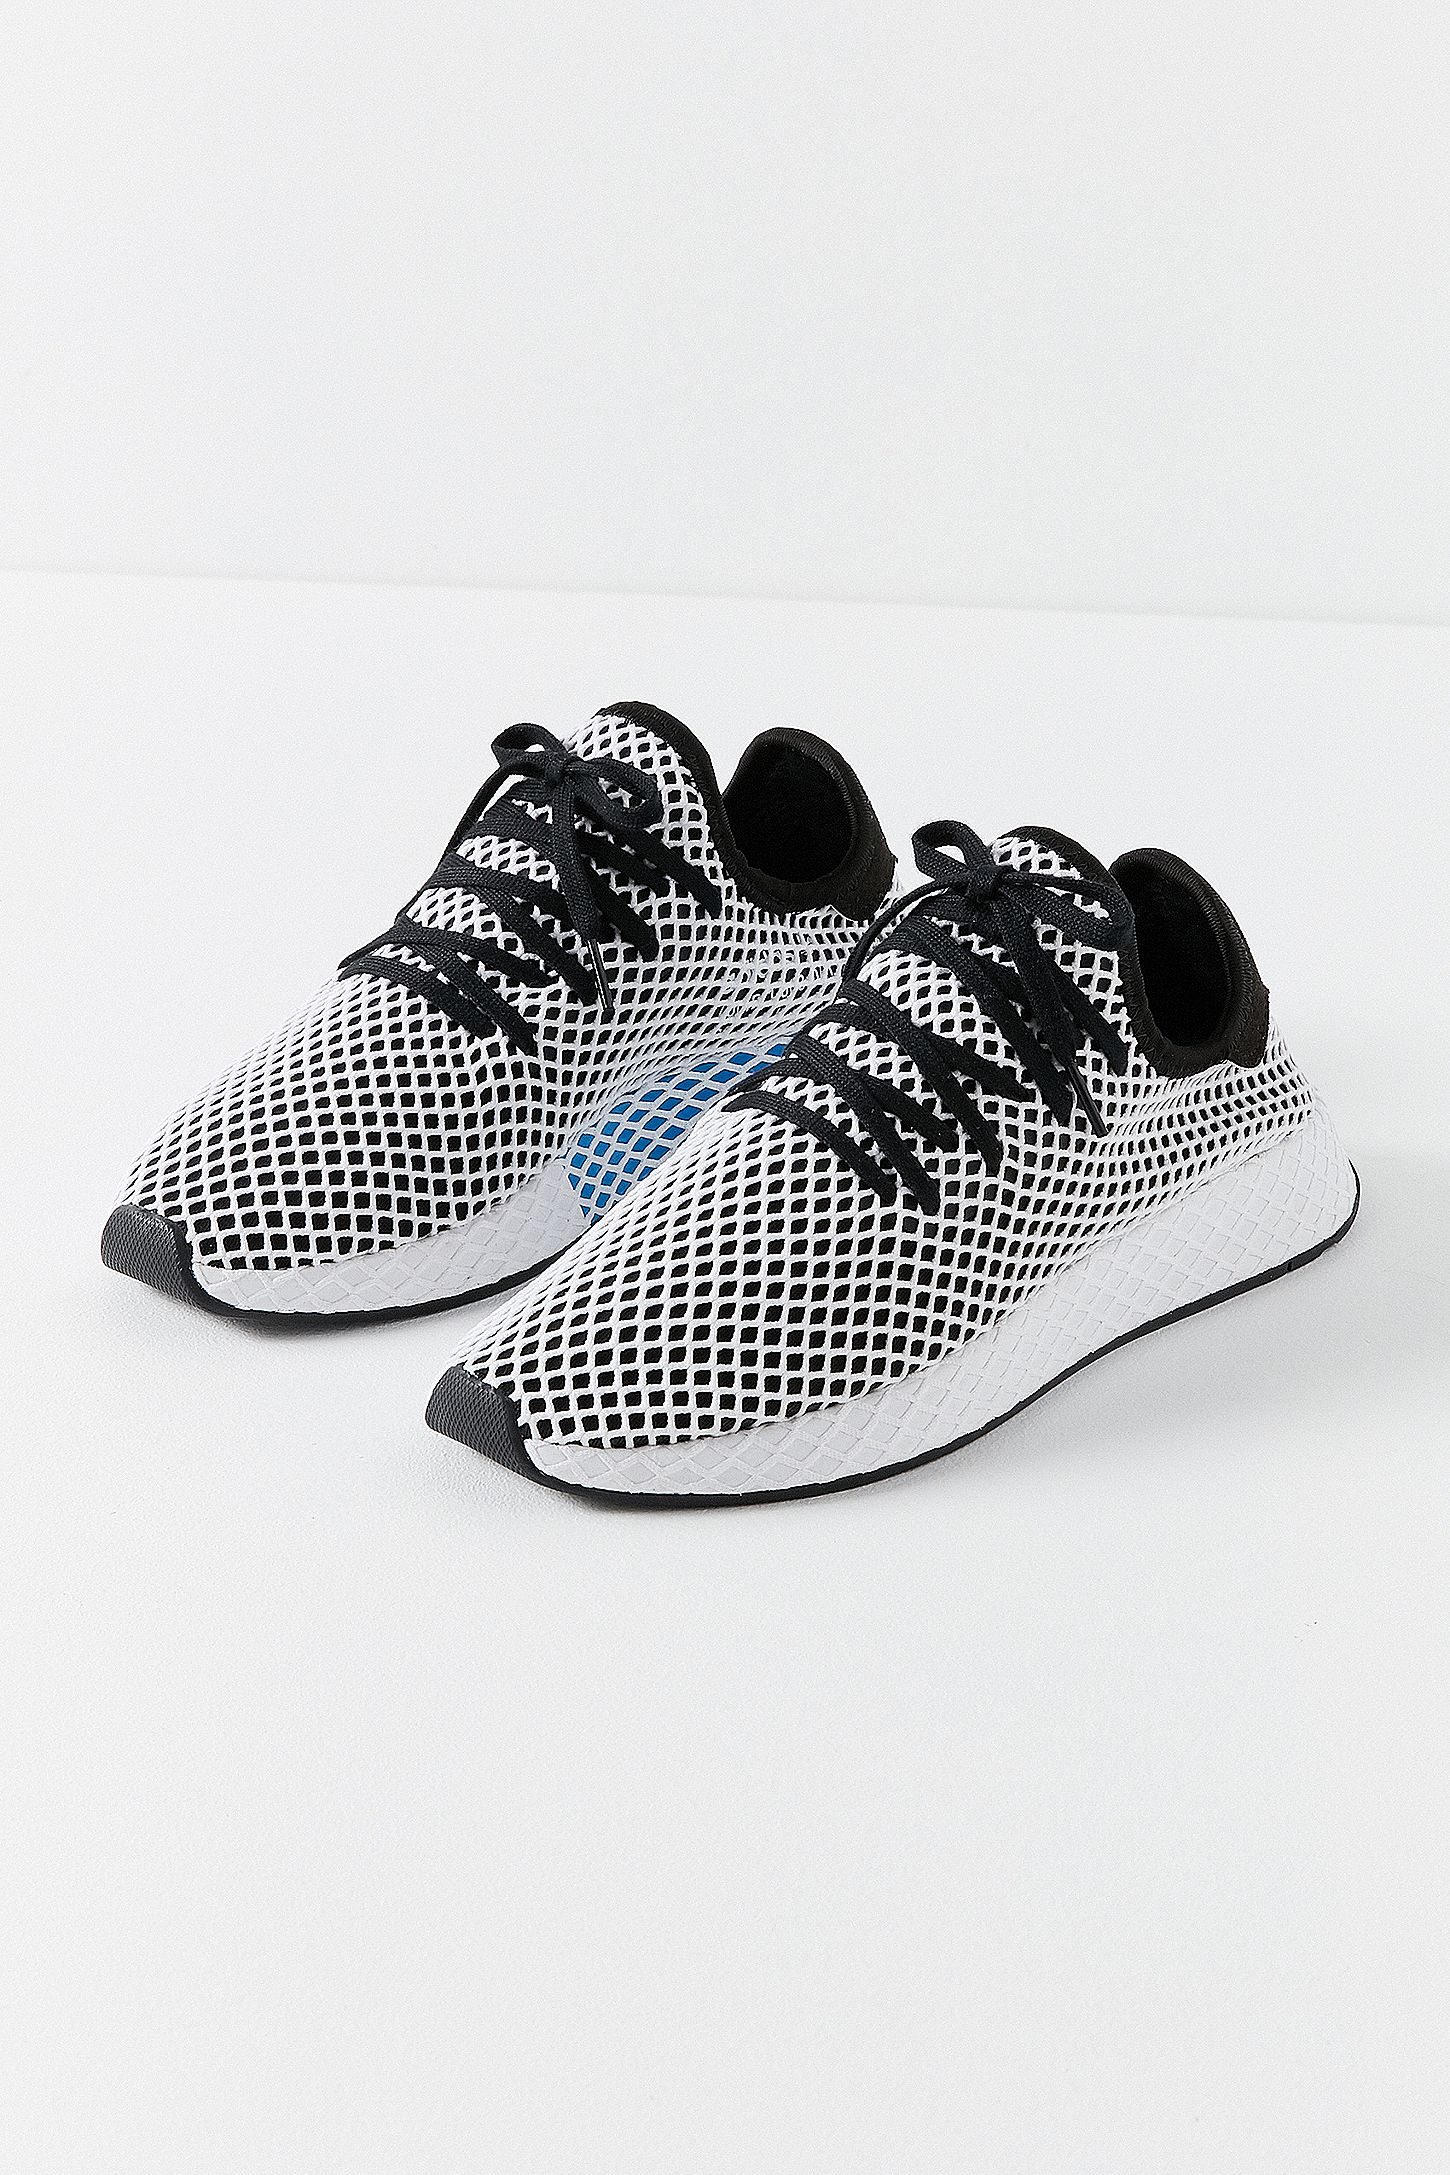 23b8616e1 adidas Originals Deerupt Black and White Running Trainers